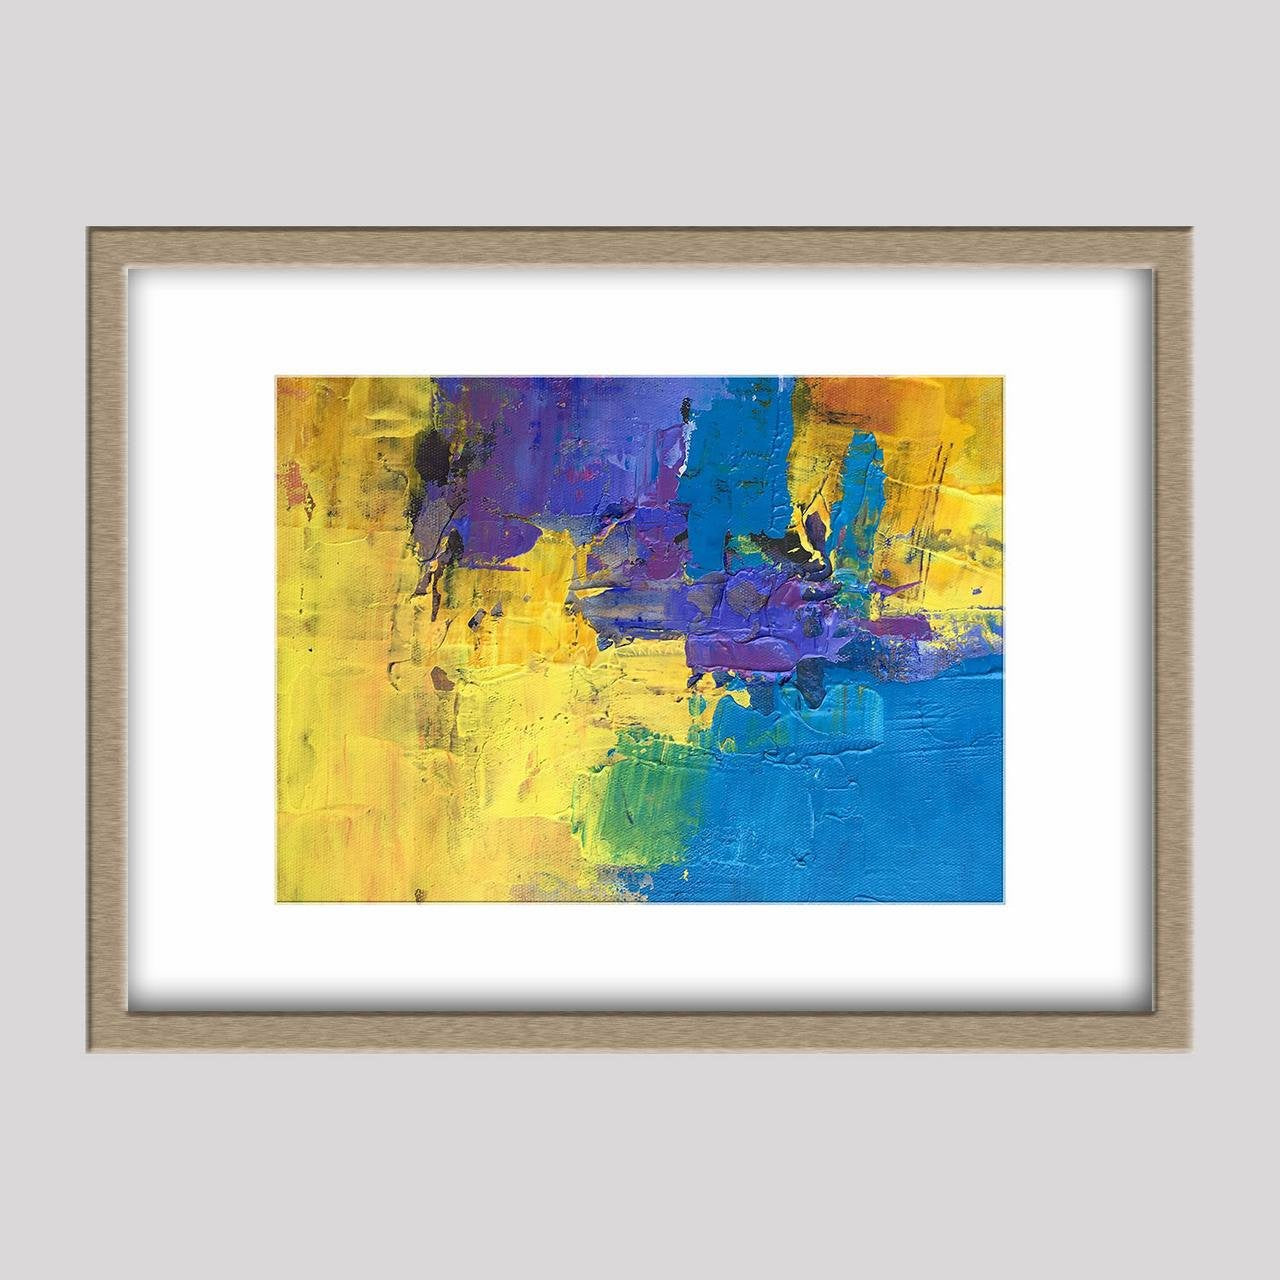 Abstract Oil Painting, Abstract Canvas Painting, Original Artwork, Small Canvas Wall Art, Modern Painting, Small Canvas Painting, Wall Decor